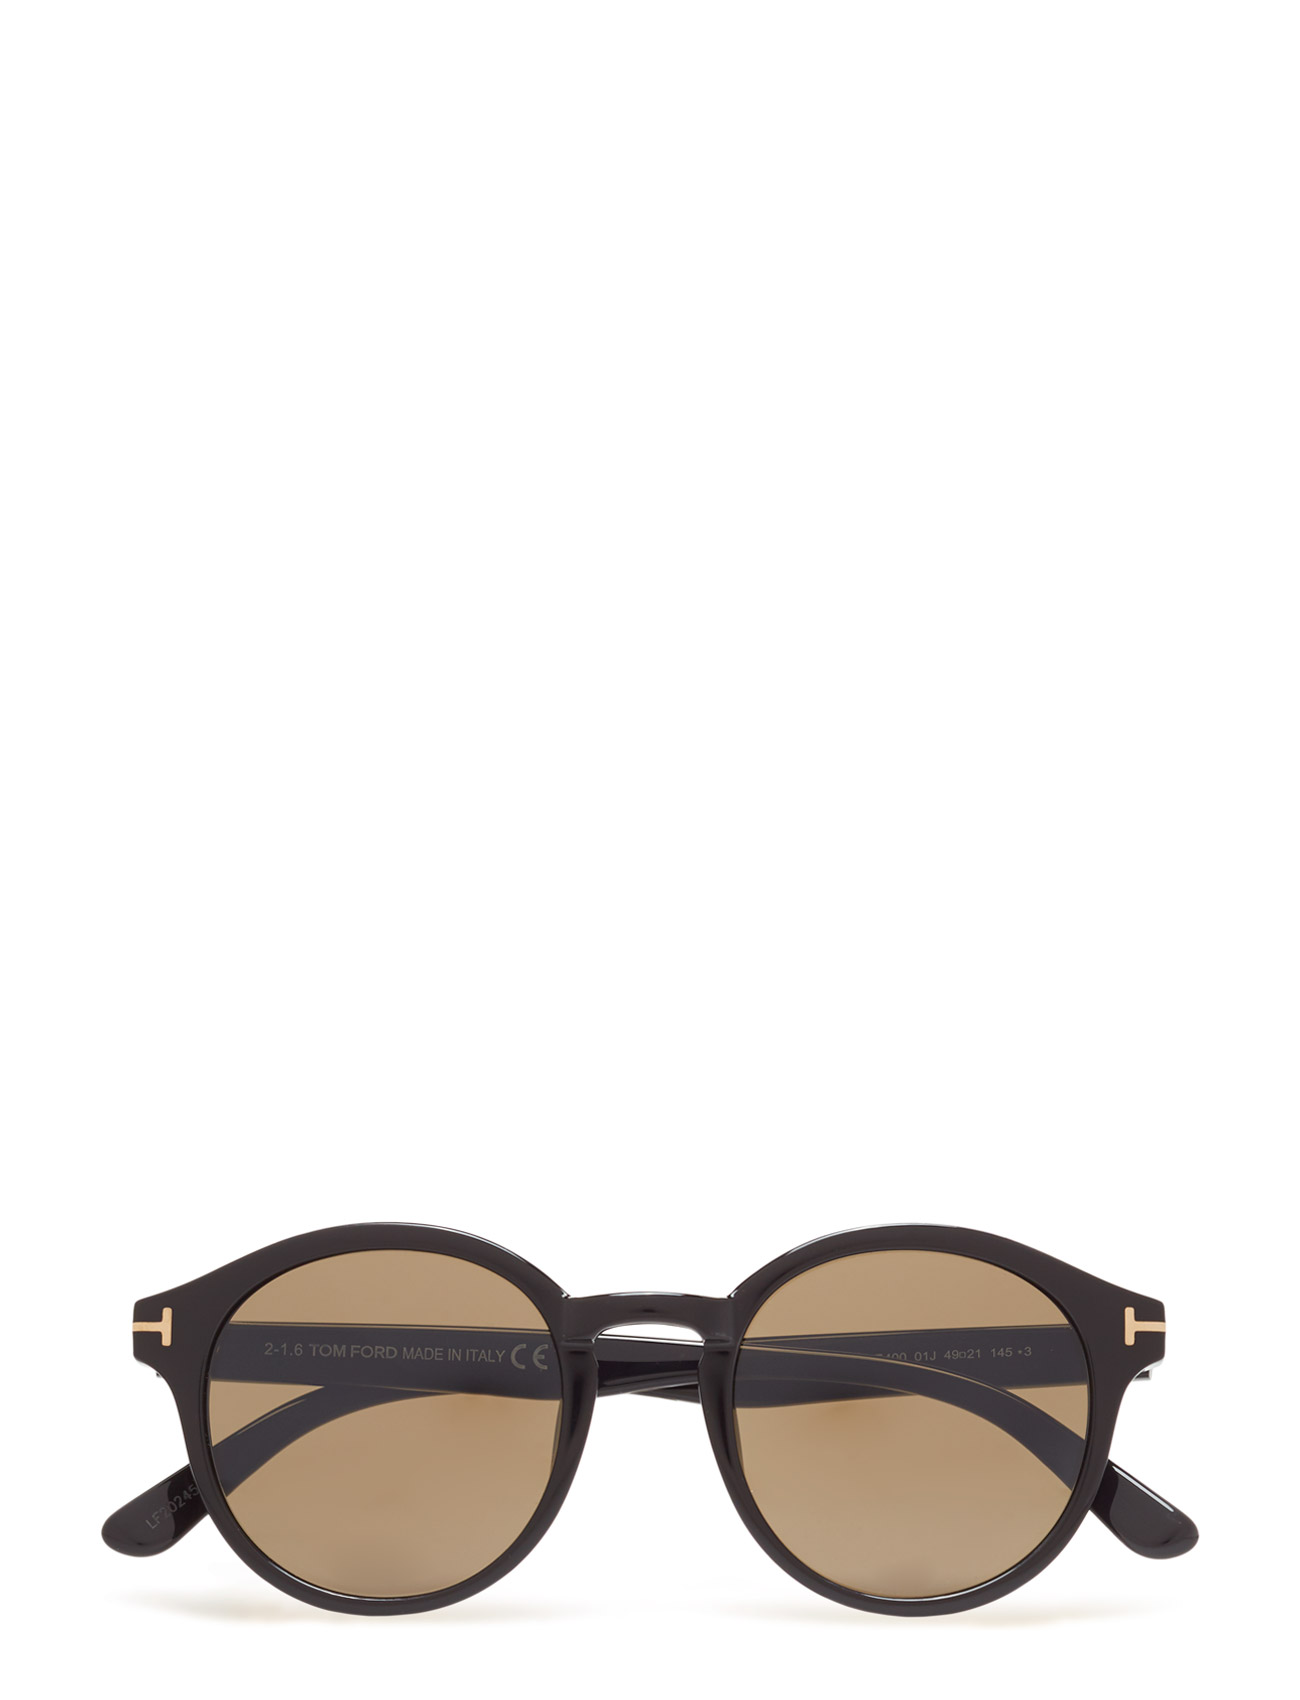 Tom Ford Lucho Tom Ford Sunglasses Solbriller til Kvinder i